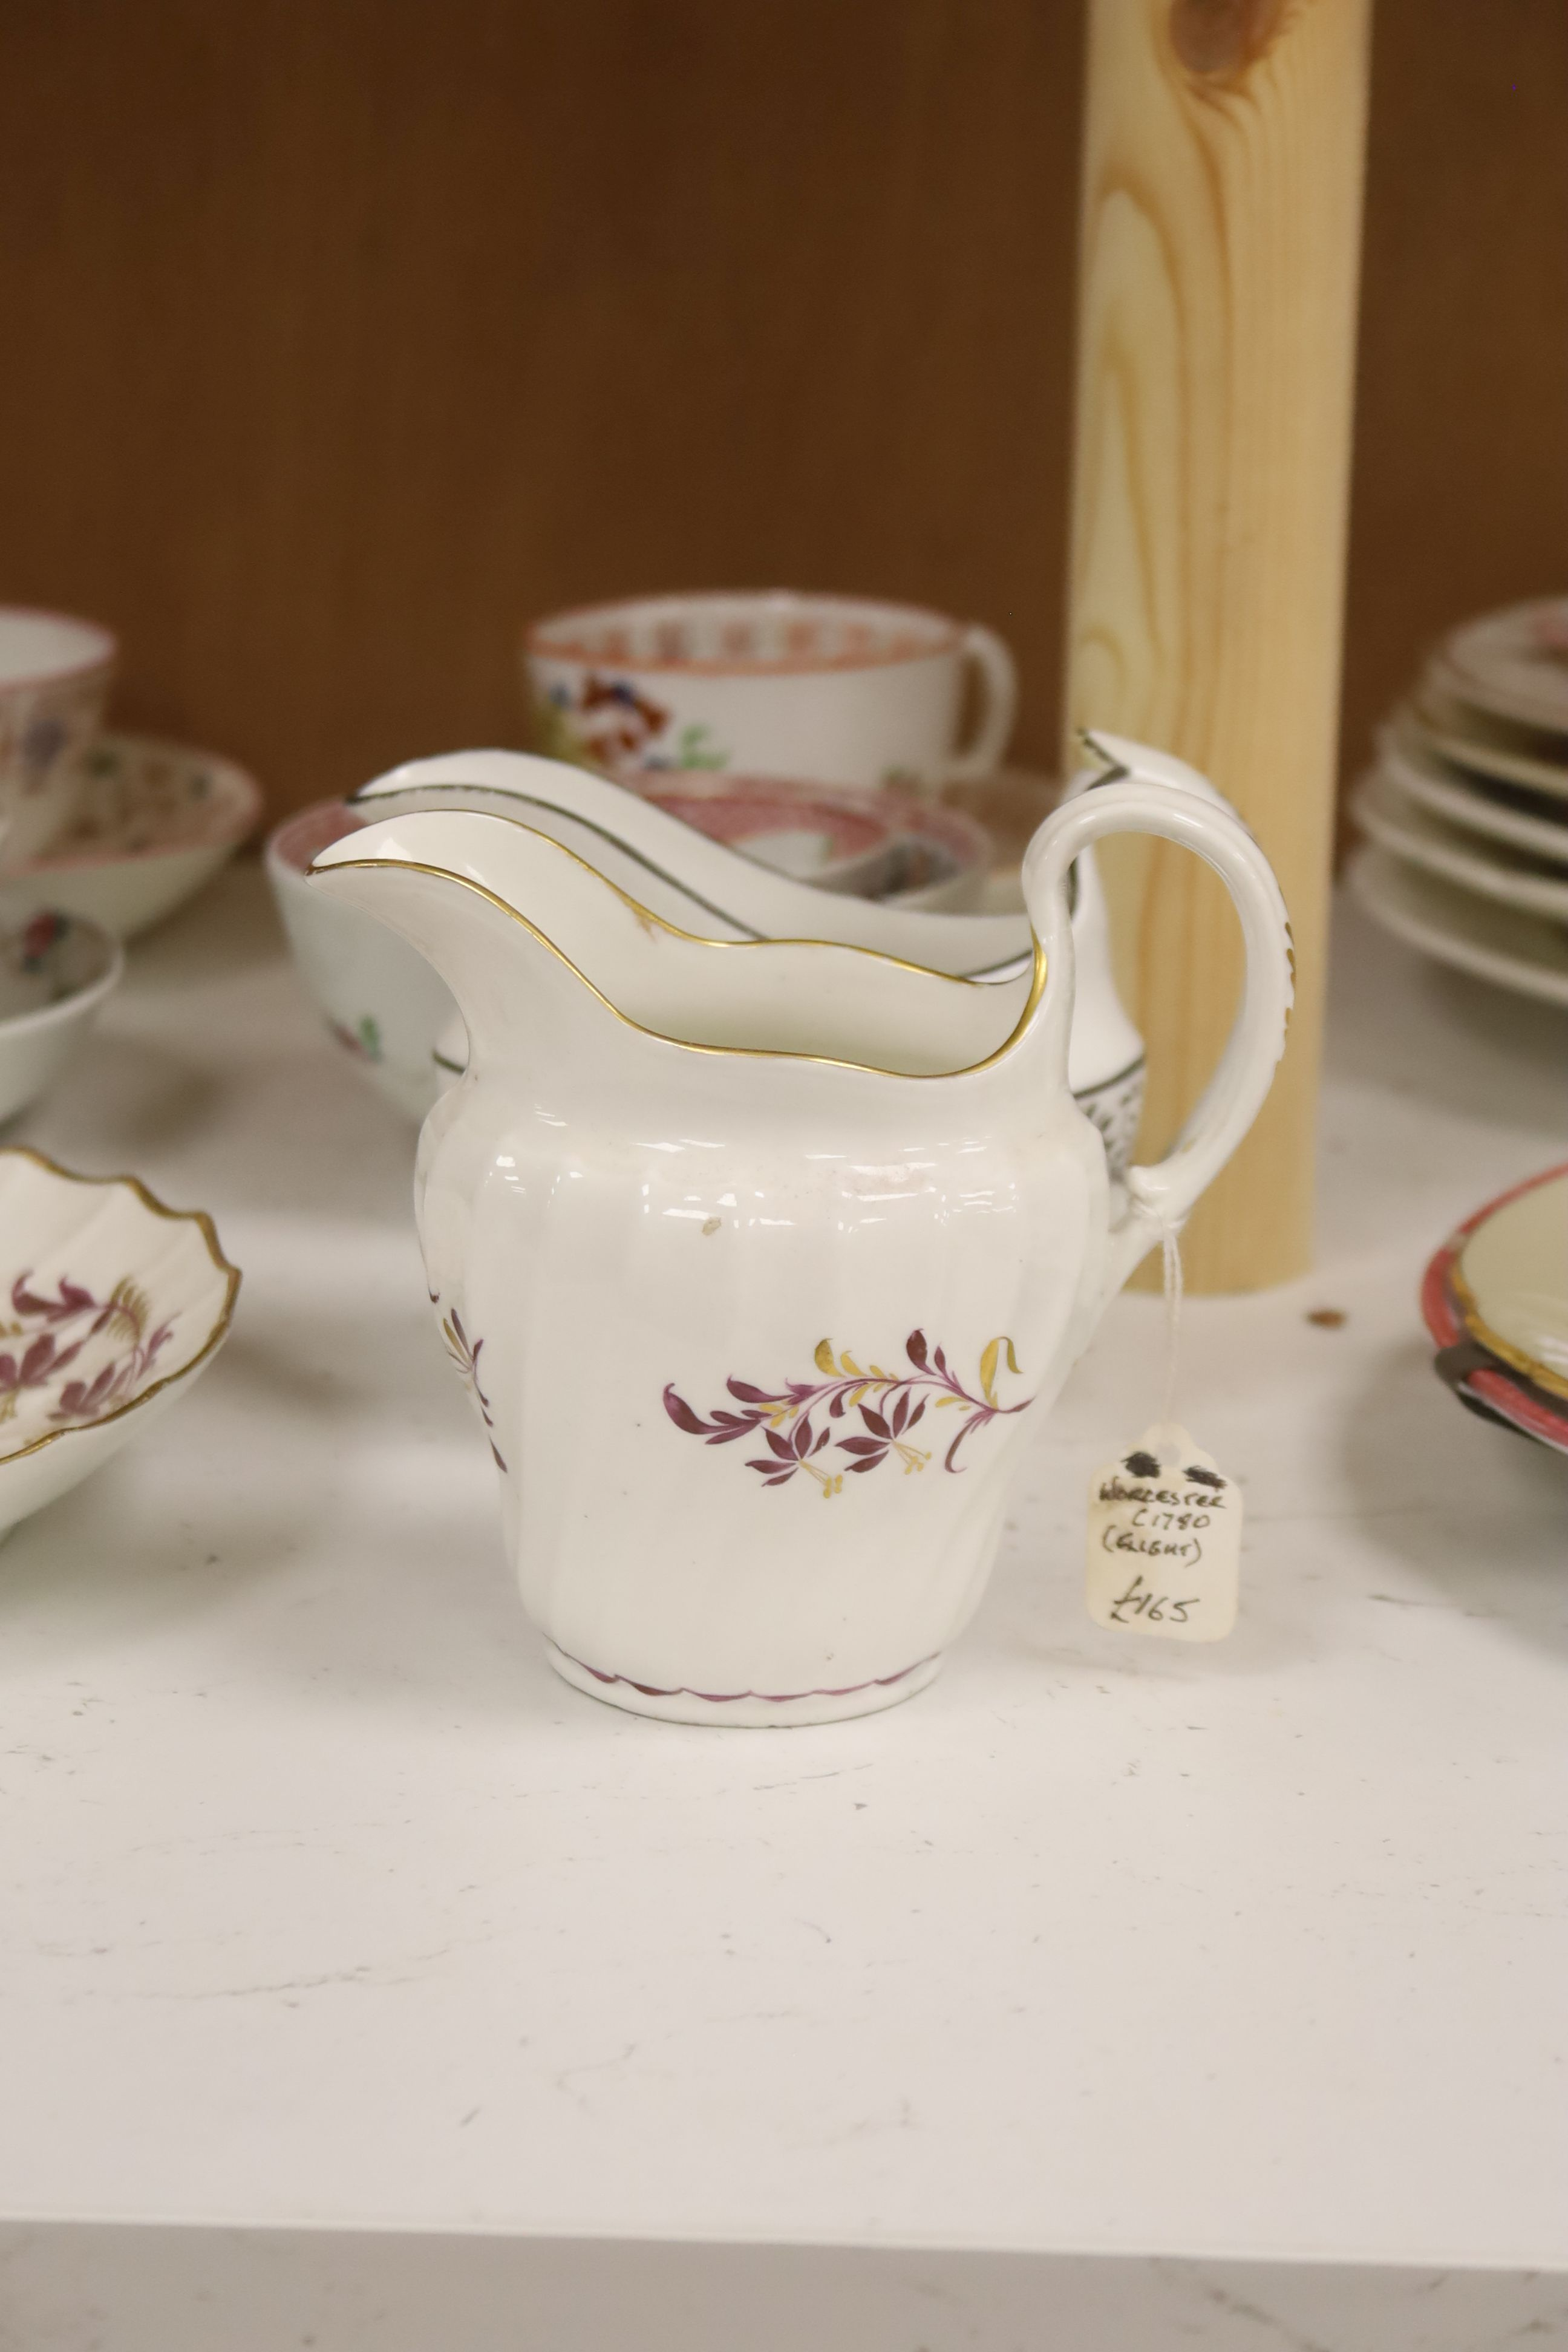 A group of late 18th / early 19th century English porcelain teaware and plates,together with a - Image 4 of 6